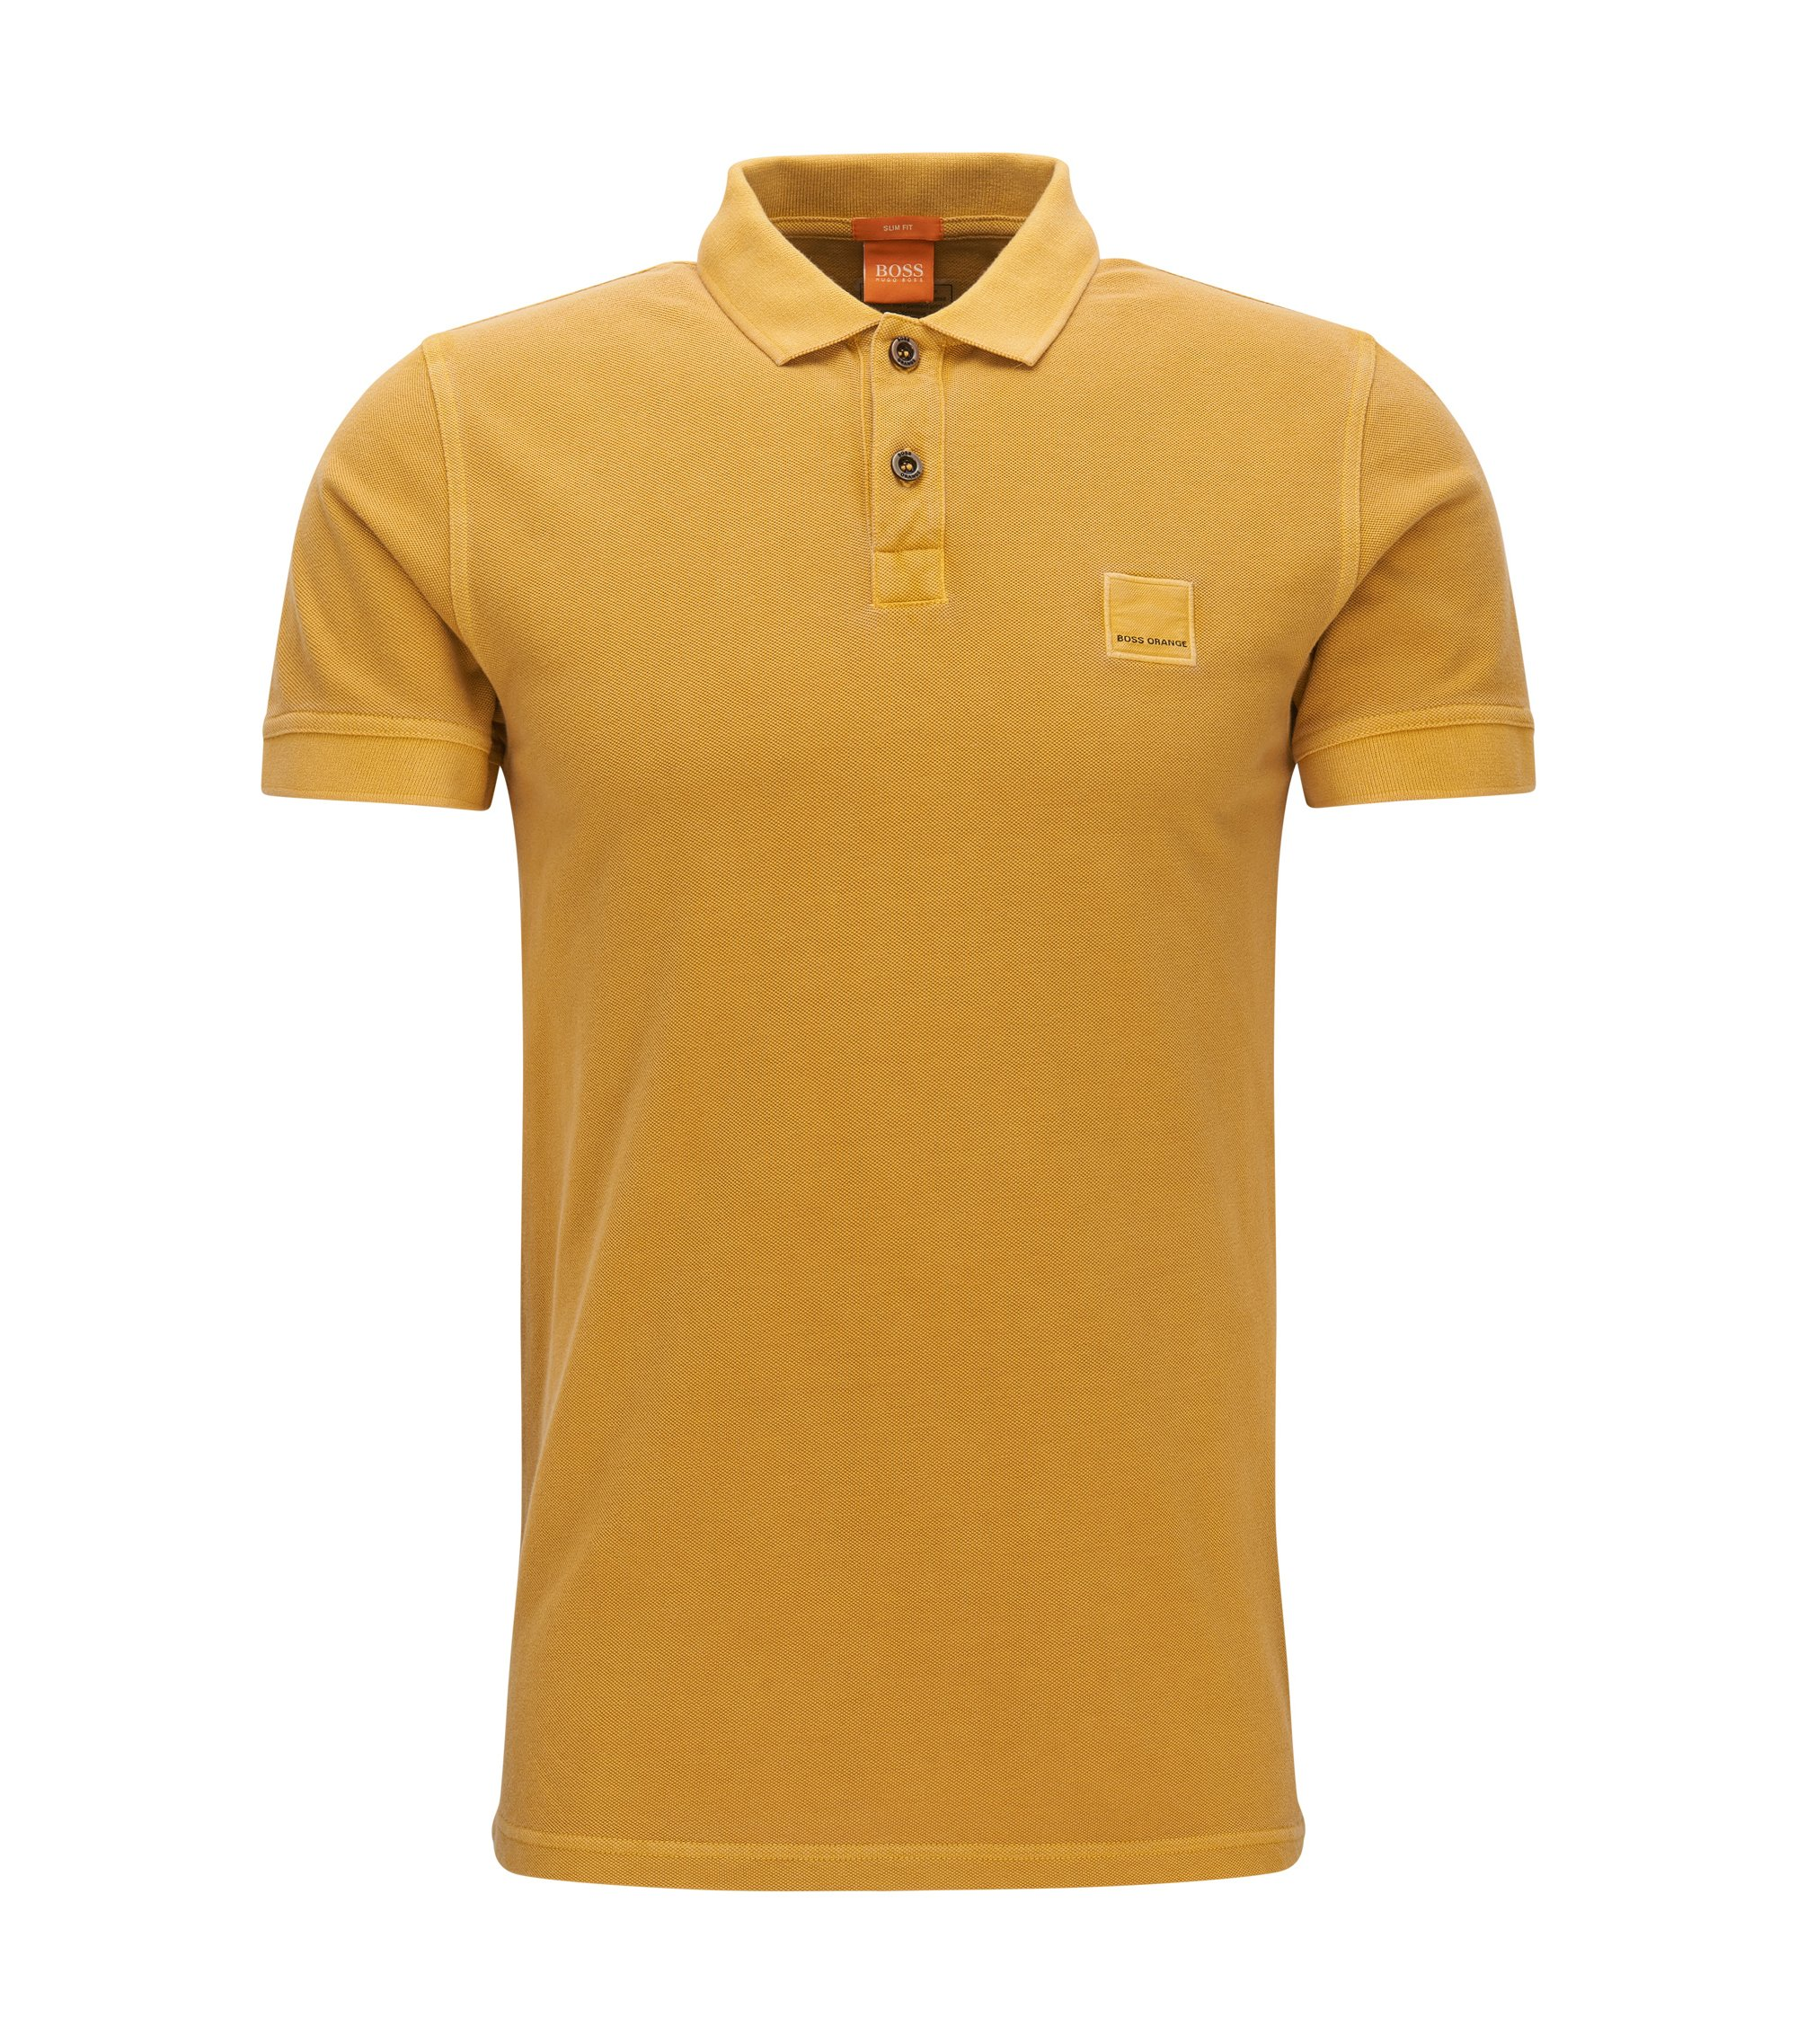 Cotton Polo Shirt, Slim Fit | Pascha, Yellow